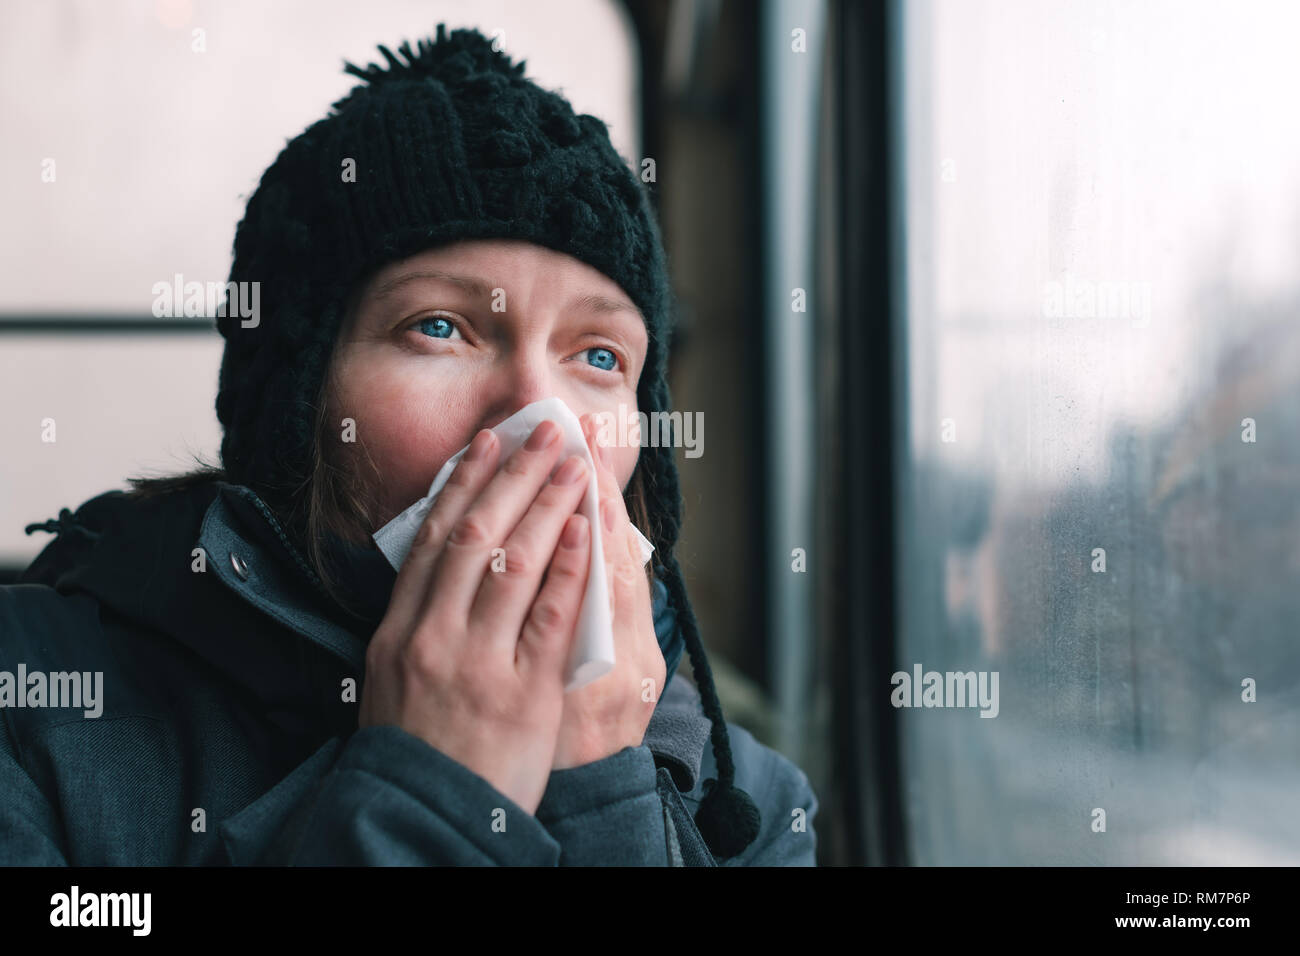 Woman blowing her nose into paper handkerchief on the bus on a cold winter day at the start of the flu season - Stock Image